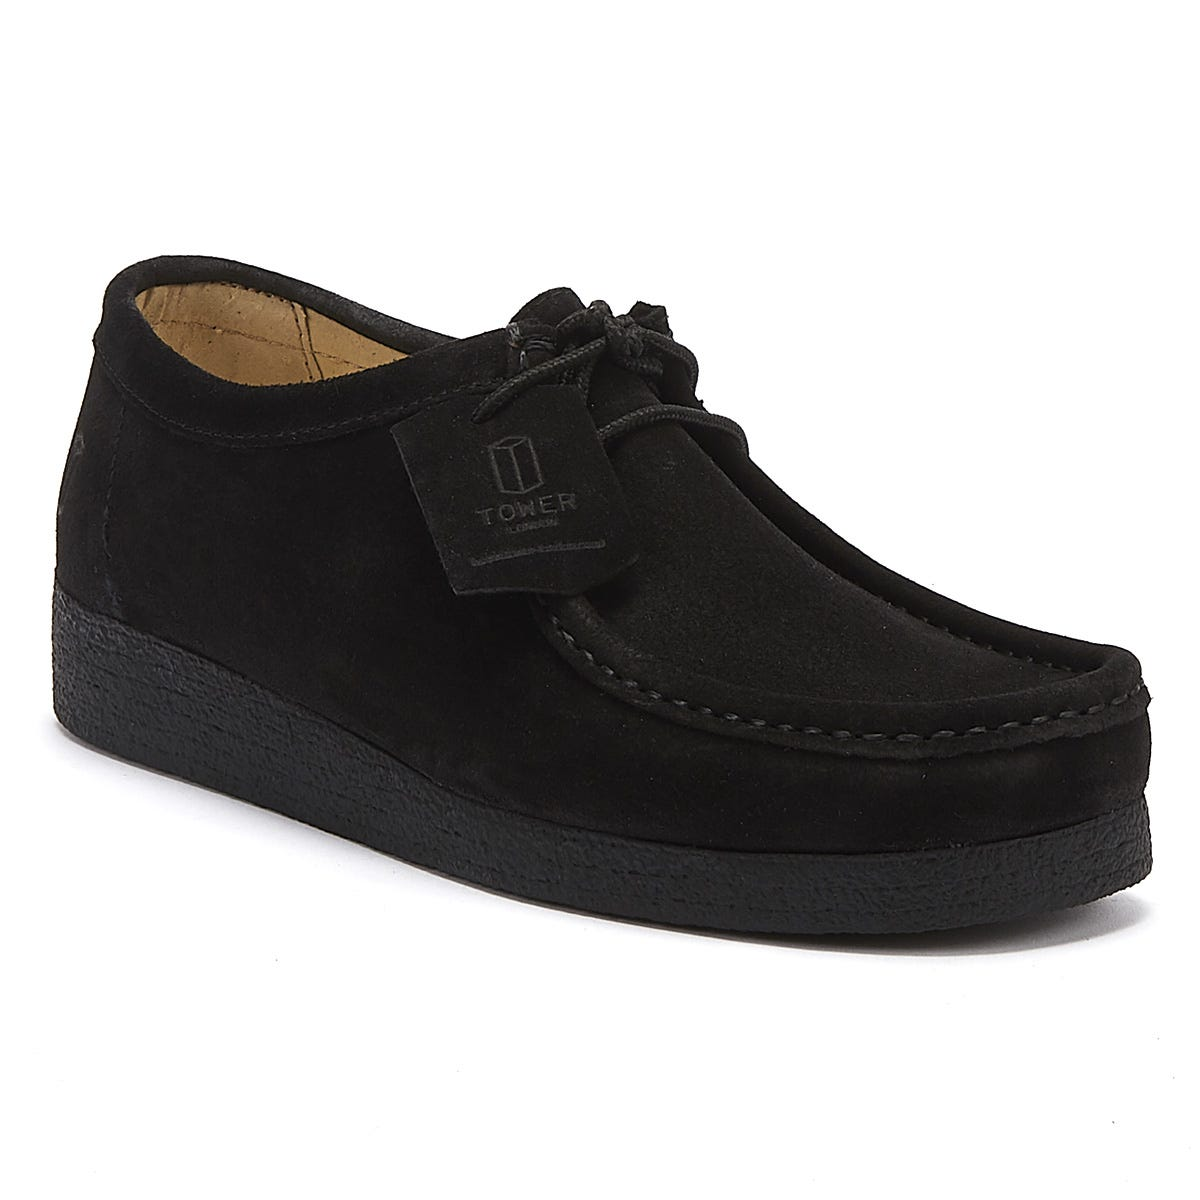 TOWER London Black Napa Suede Shoes